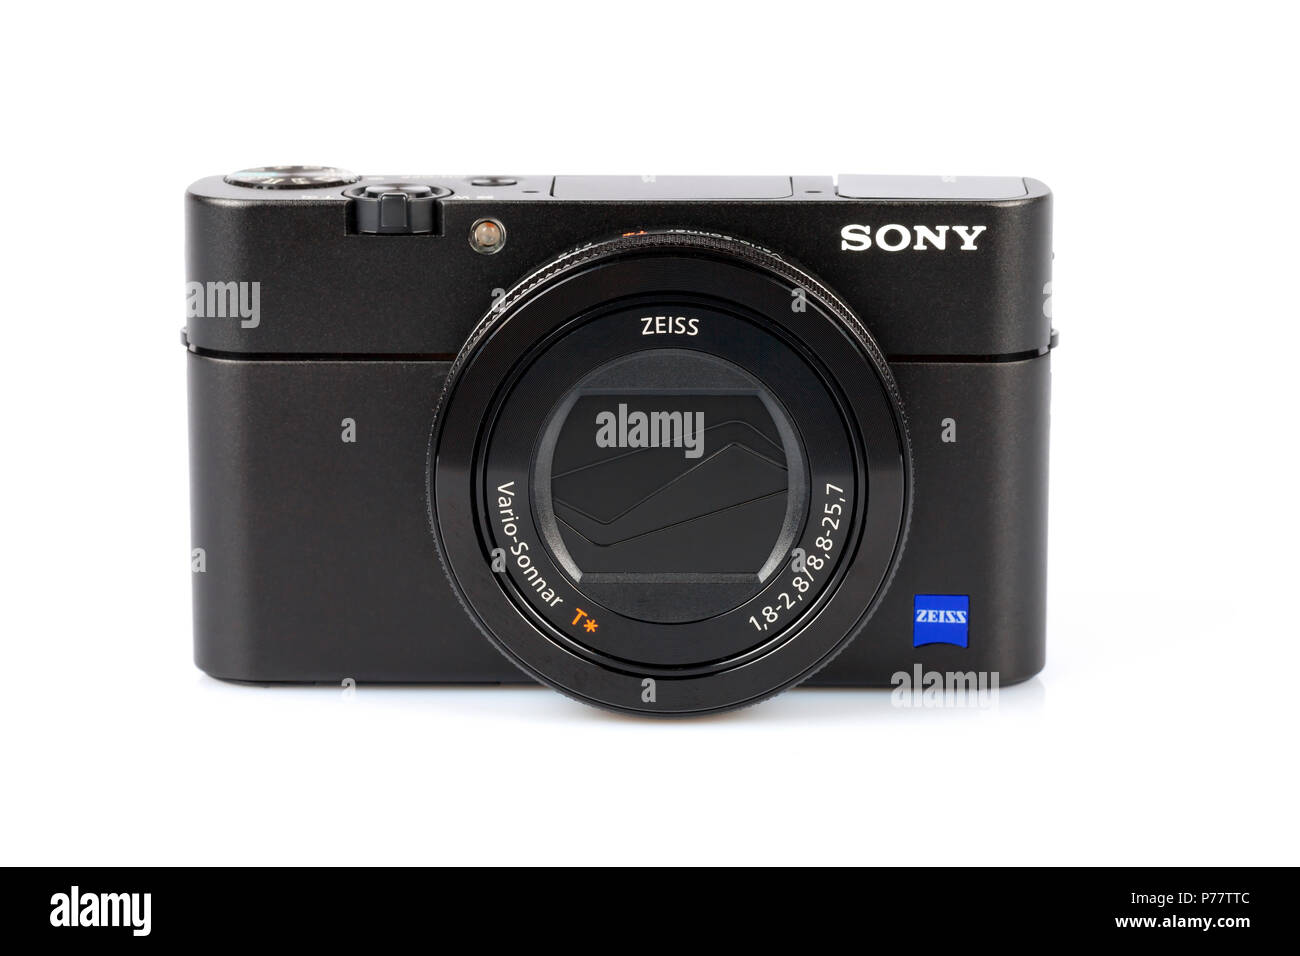 Advanced compact camera Sony DSC-RX100 M5 isolated on white. One of the best high-end compact cameras. Stock Photo